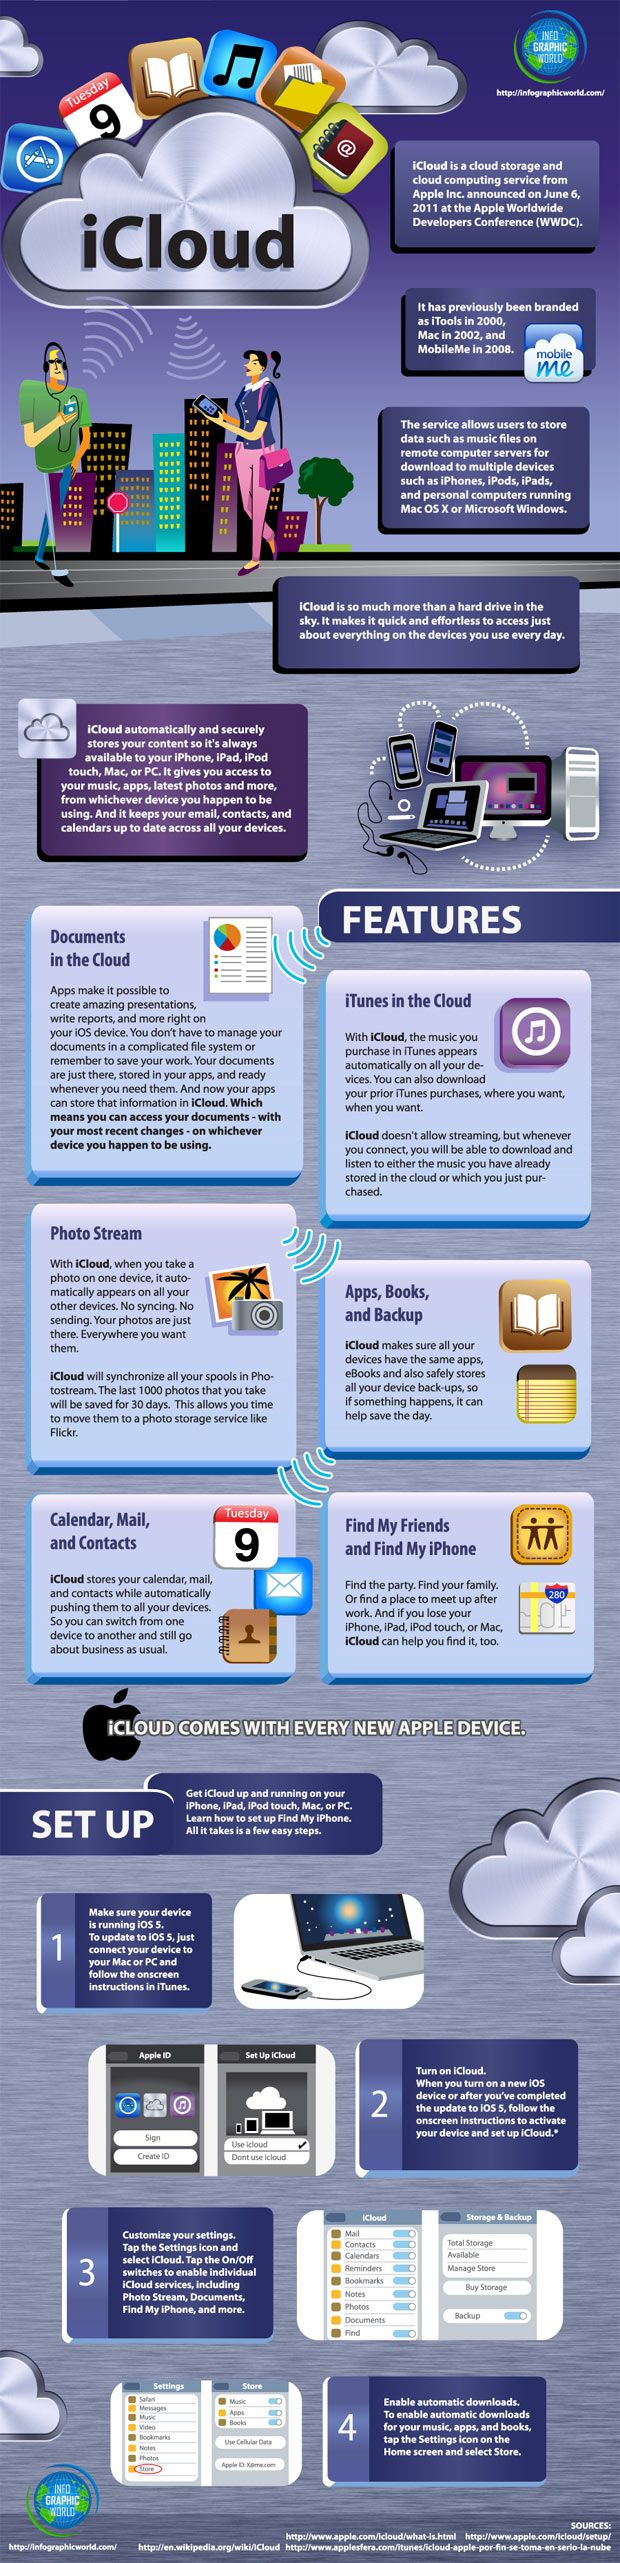 iCloud [infographic]